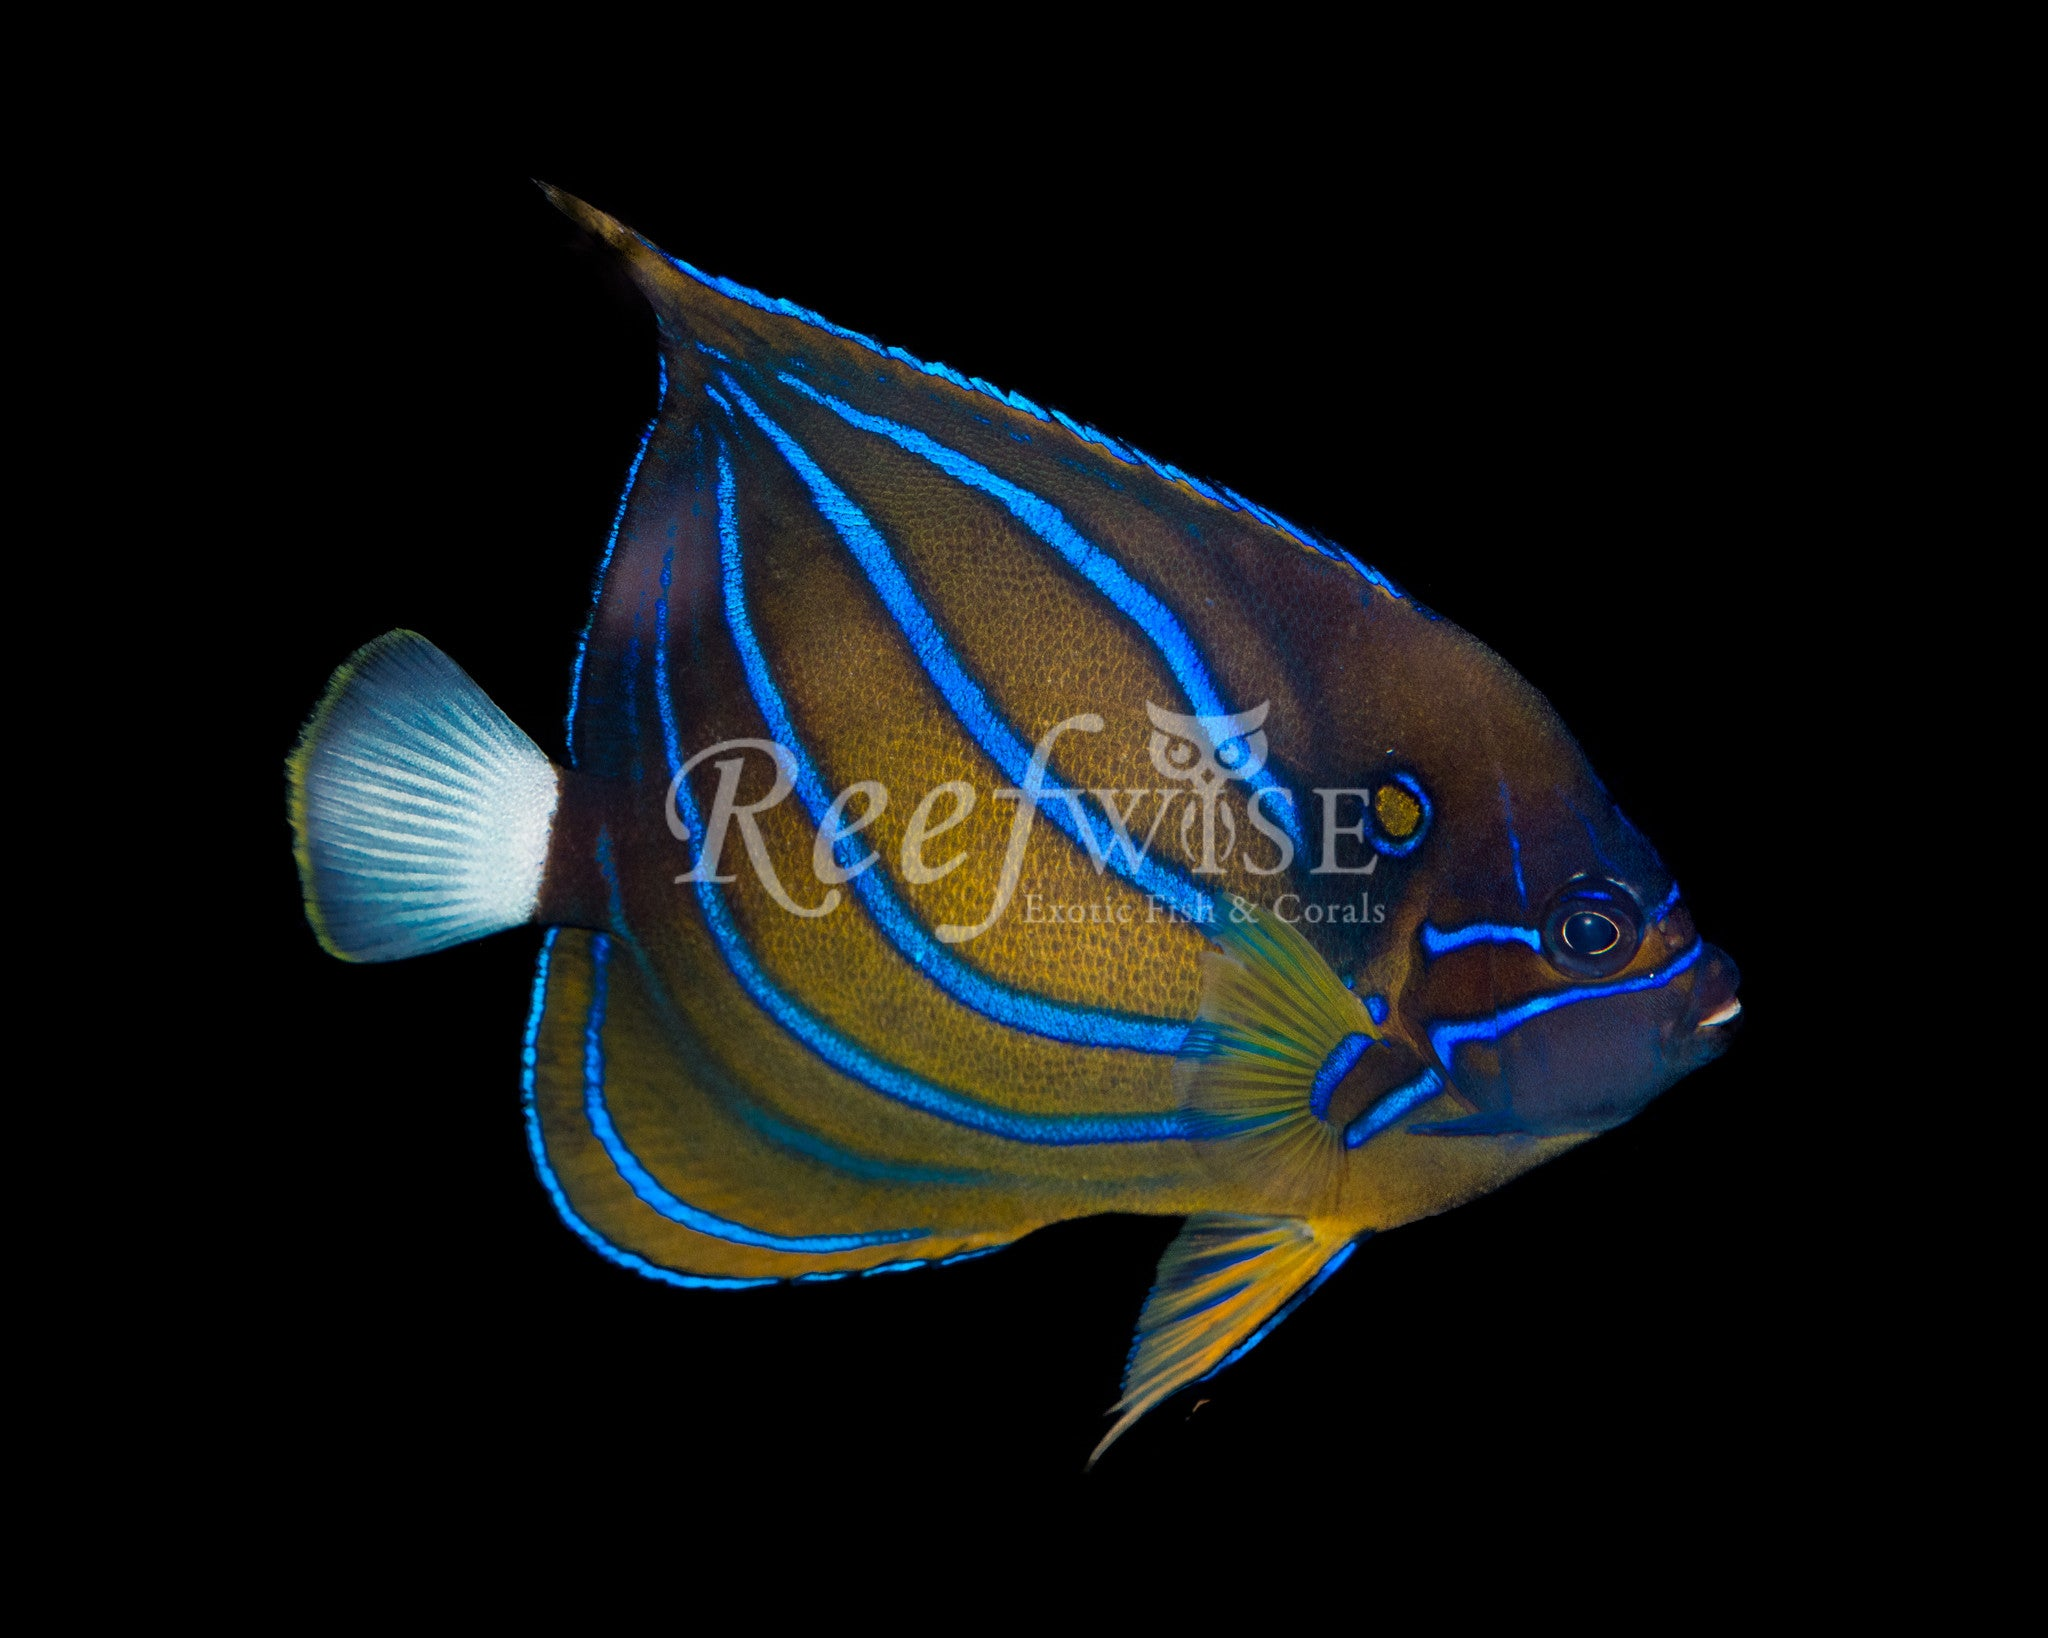 Blue Ring Annularis Angelfish WYSIWYG